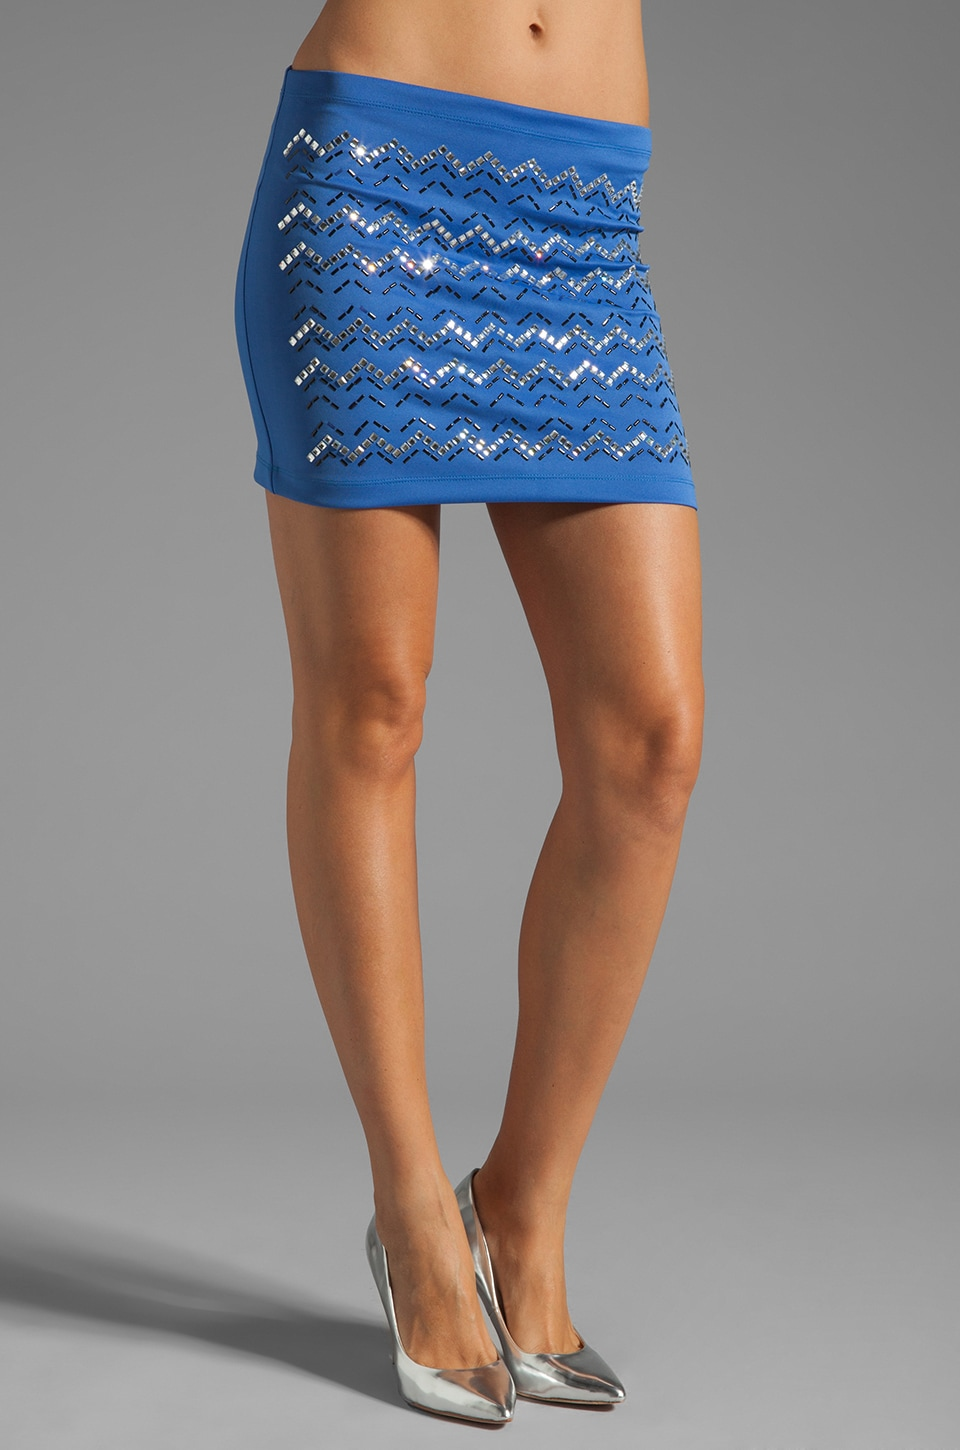 Clover Canyon Zig Zag Rhinestone Neoprene Skirt in Blue